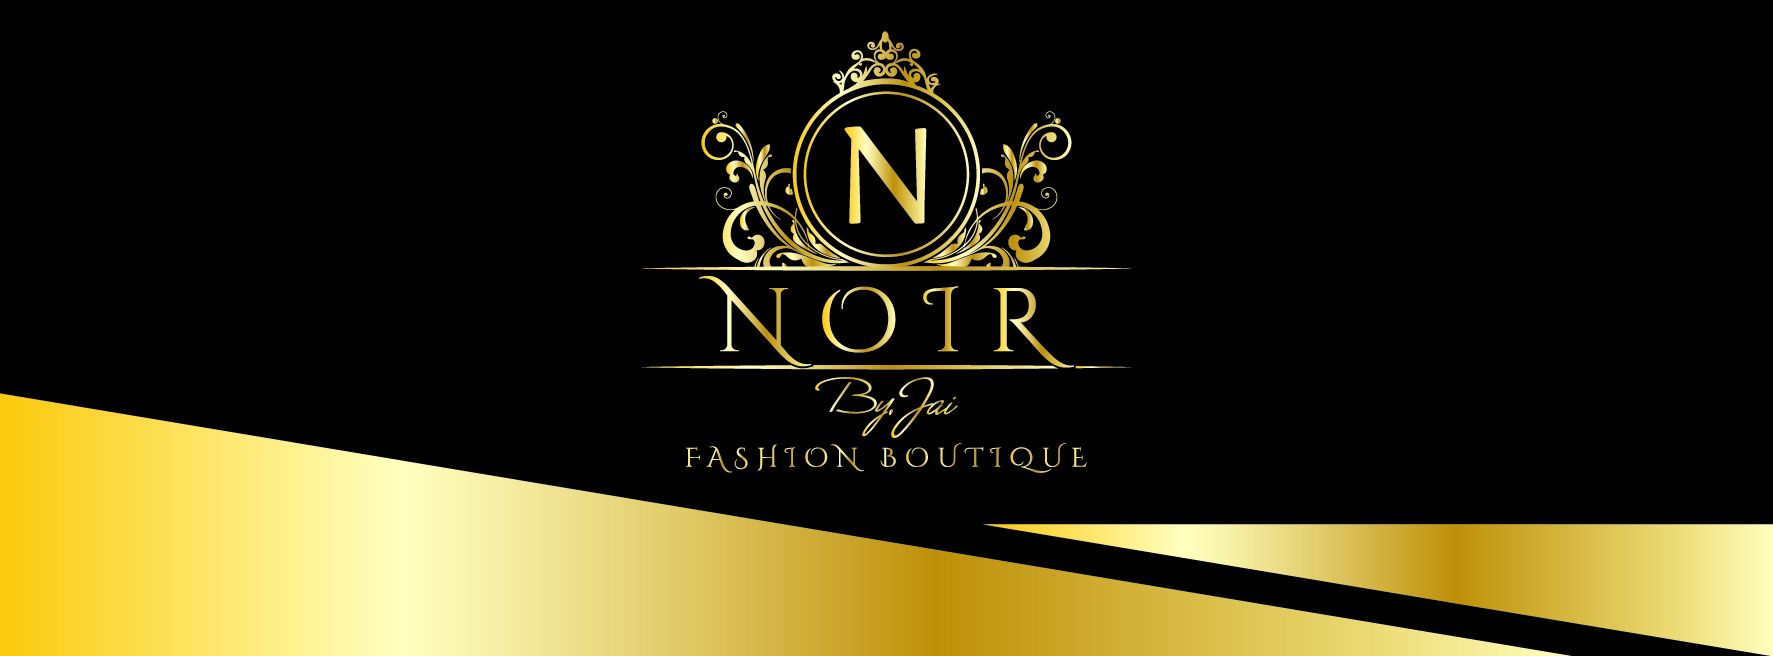 NoirByJai Fashion Boutique